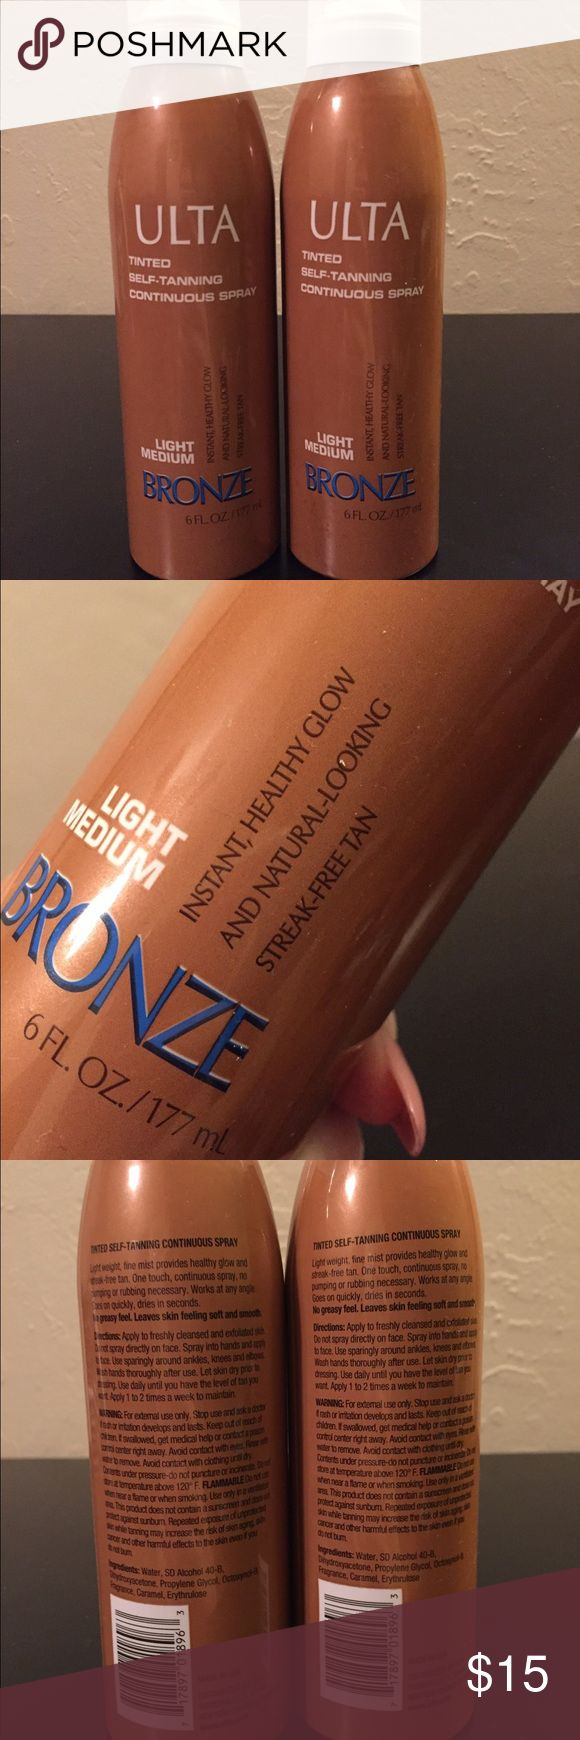 ☀️ULTA Self Tanning Spray (2)☀️ Self tanning spray by ULTA Beauty. Comes with two bottles of light/medium bronze shade. Each bottle is 6 fl oz. I test sprayed one of the bottles so one of them is not completely full but it's 80% full and the other bottle is 100% full. Purchased from Ulta Beauty. Makeup